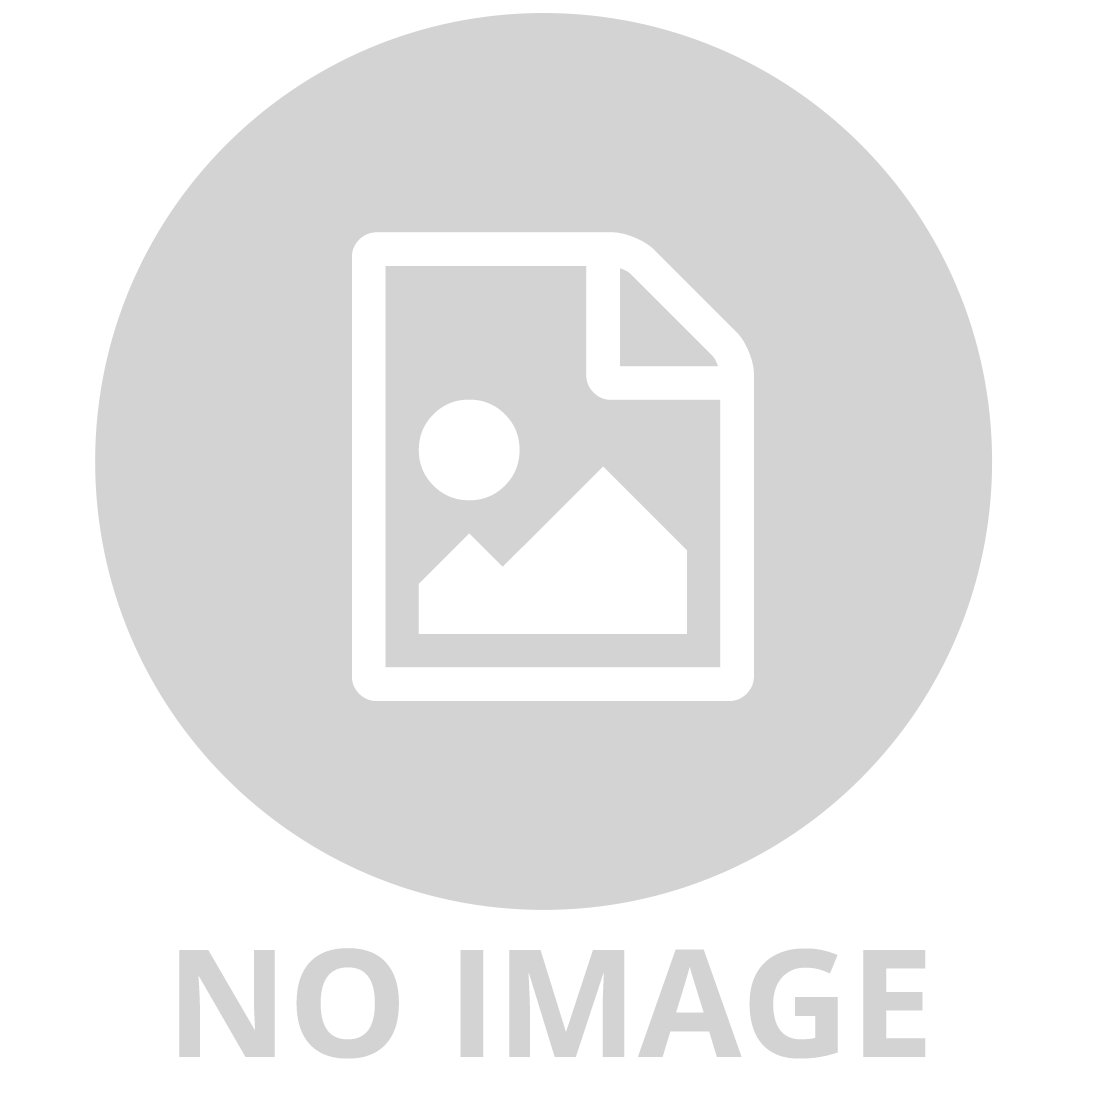 TOY STORY CLASSIC FIGURINE SET